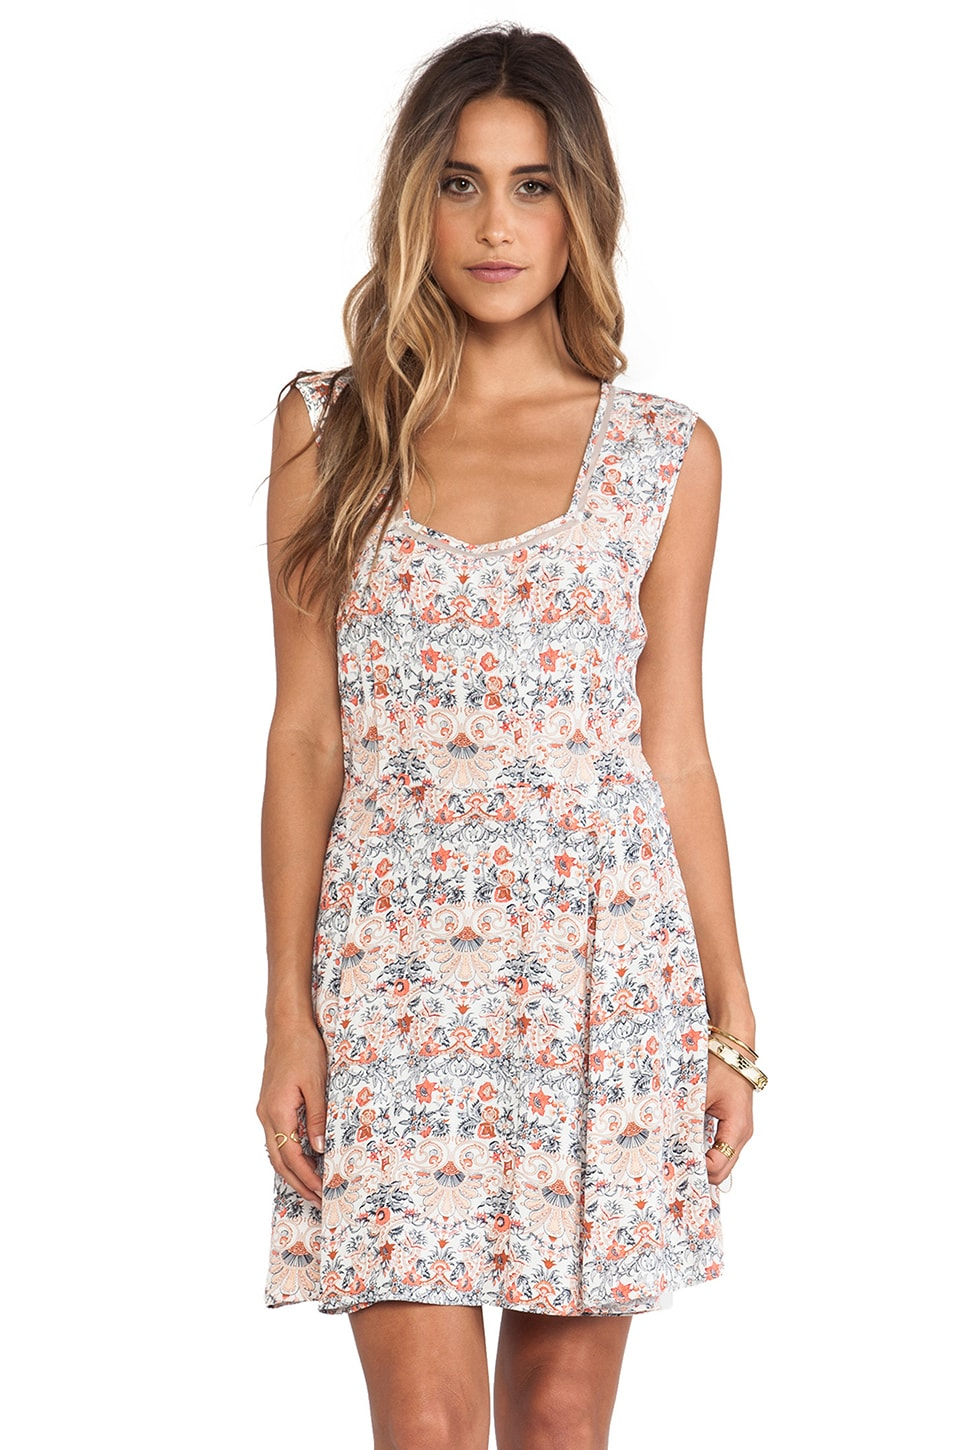 Tigerlily Italienne Floral Dress in Vanilla